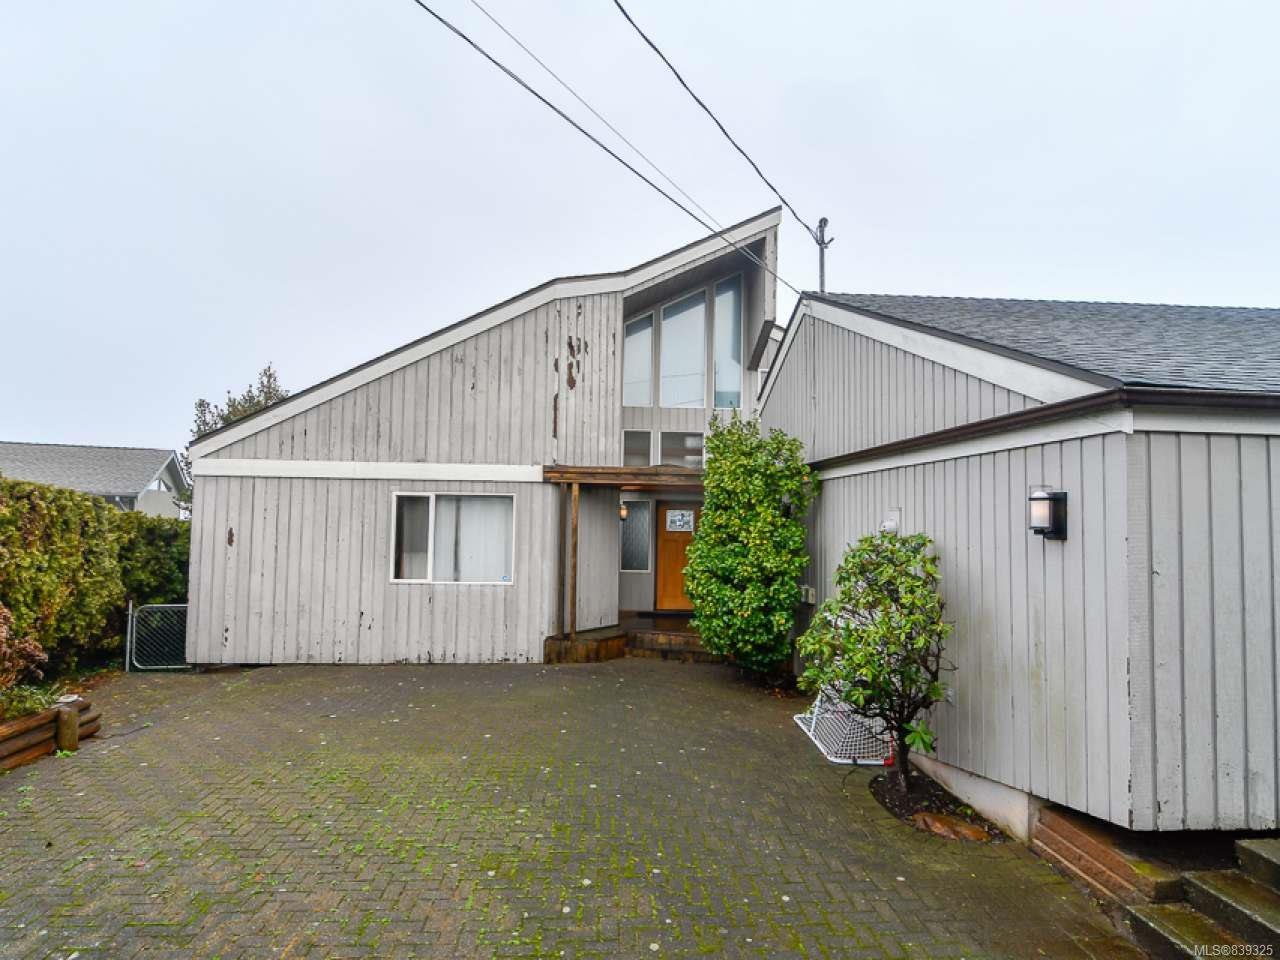 Main Photo: 517 S McLean St in CAMPBELL RIVER: CR Campbell River Central Single Family Detached for sale (Campbell River)  : MLS®# 839325